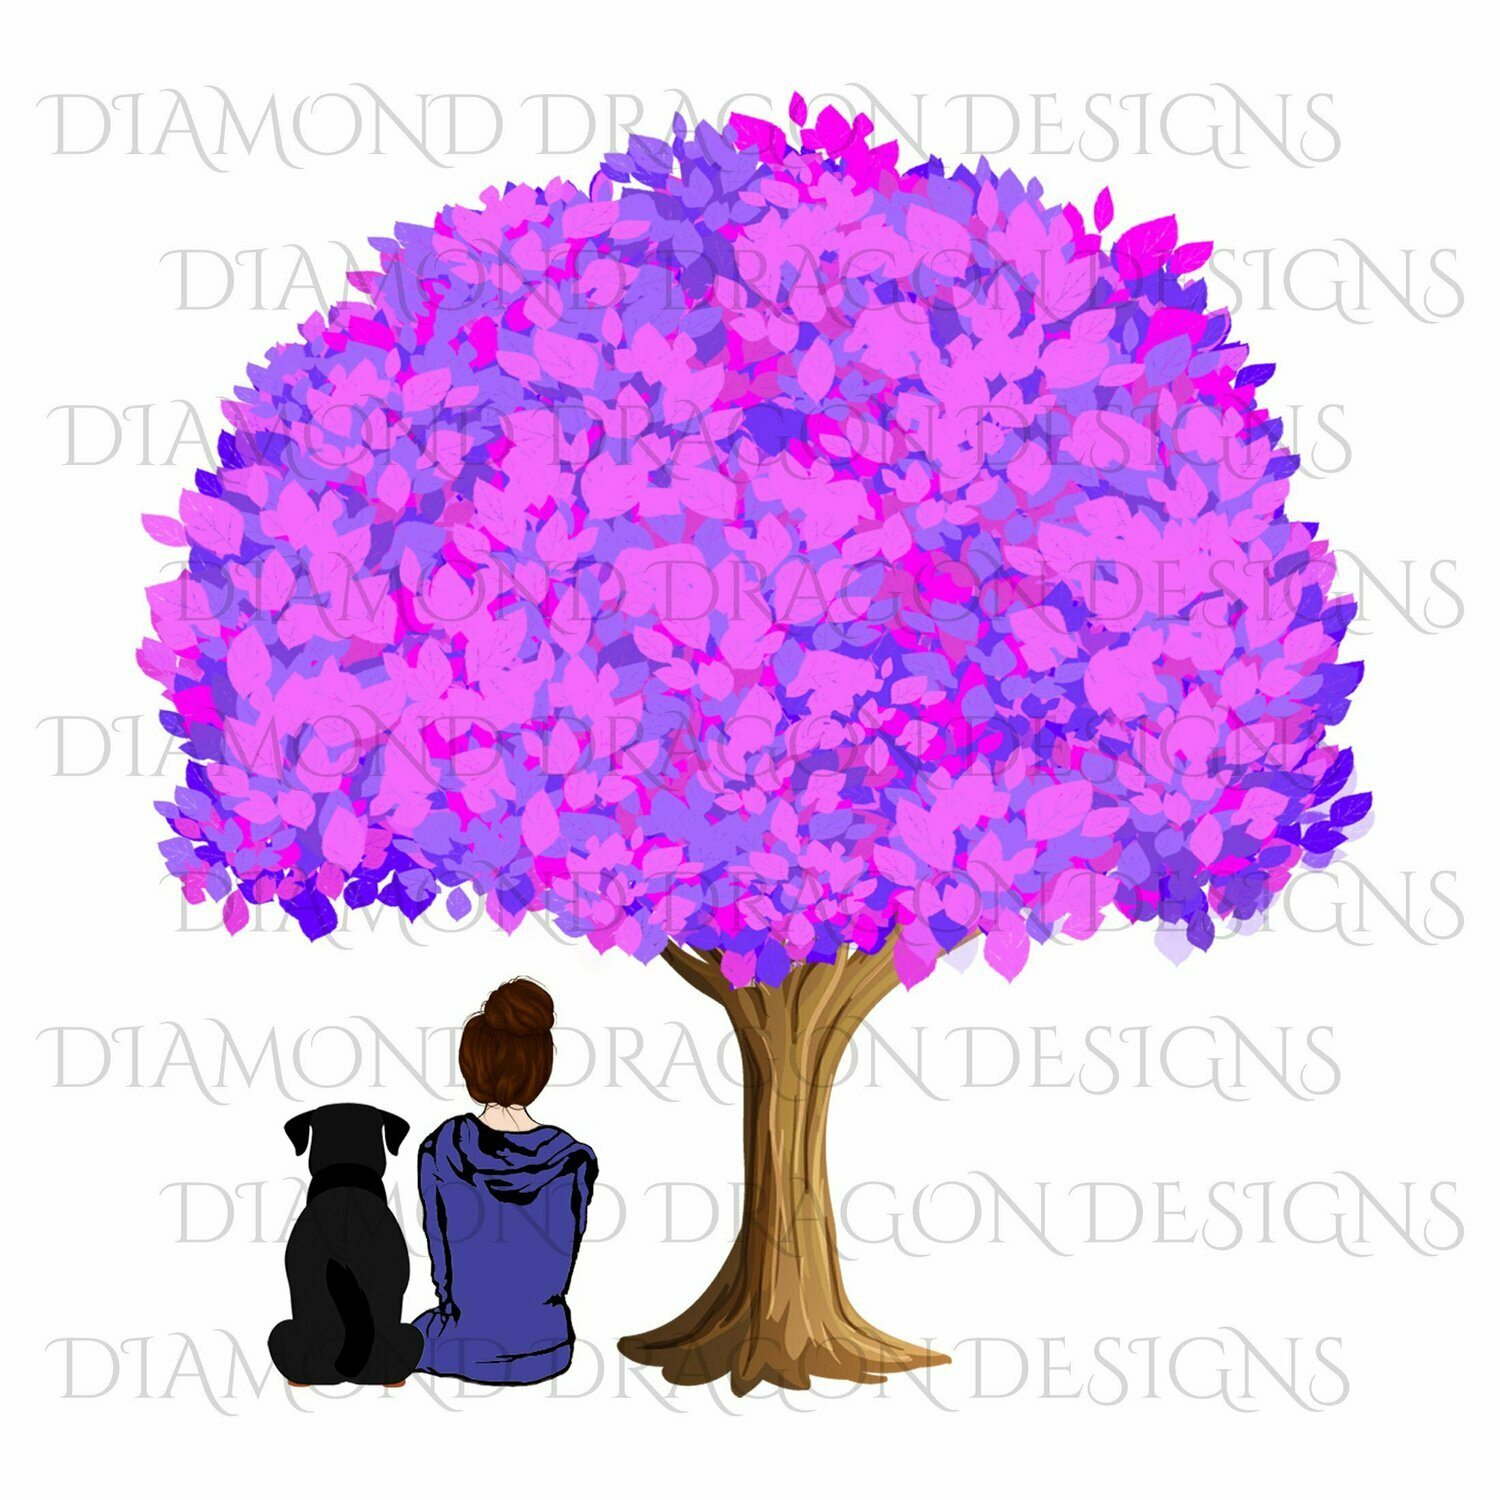 Dogs - Girl Who Loves Dogs, Girl & Dog Under Tree, Girls Best Friend, Woman and Dog Under Tree, Digital Image